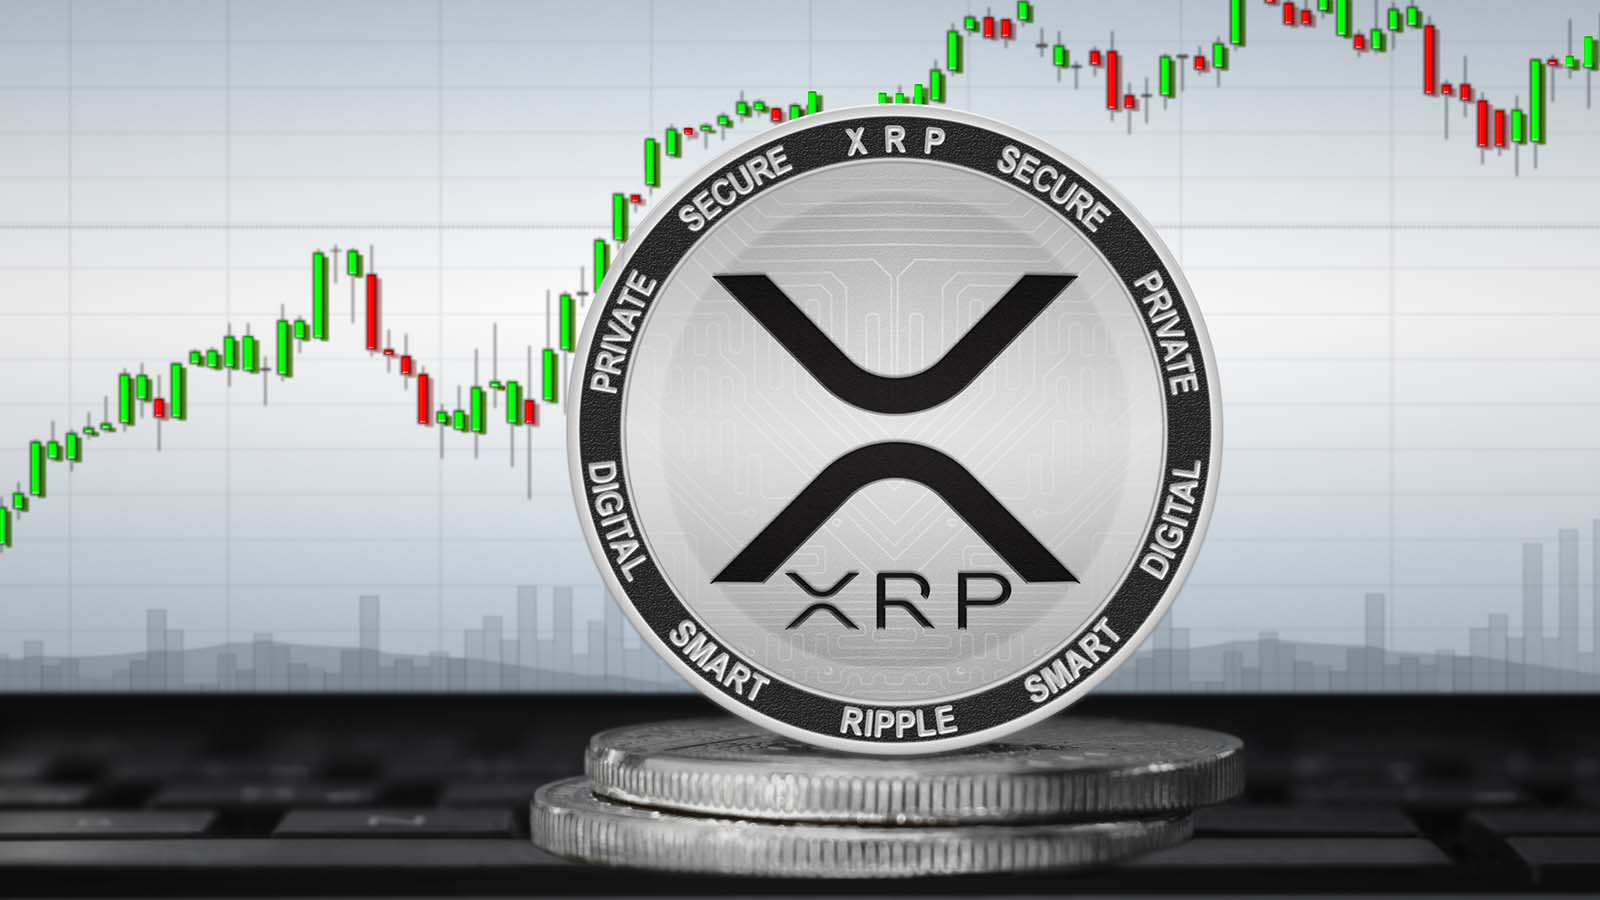 XRP-USD: Forecast of Imminent Ripple Breakout Could Be Credible  image